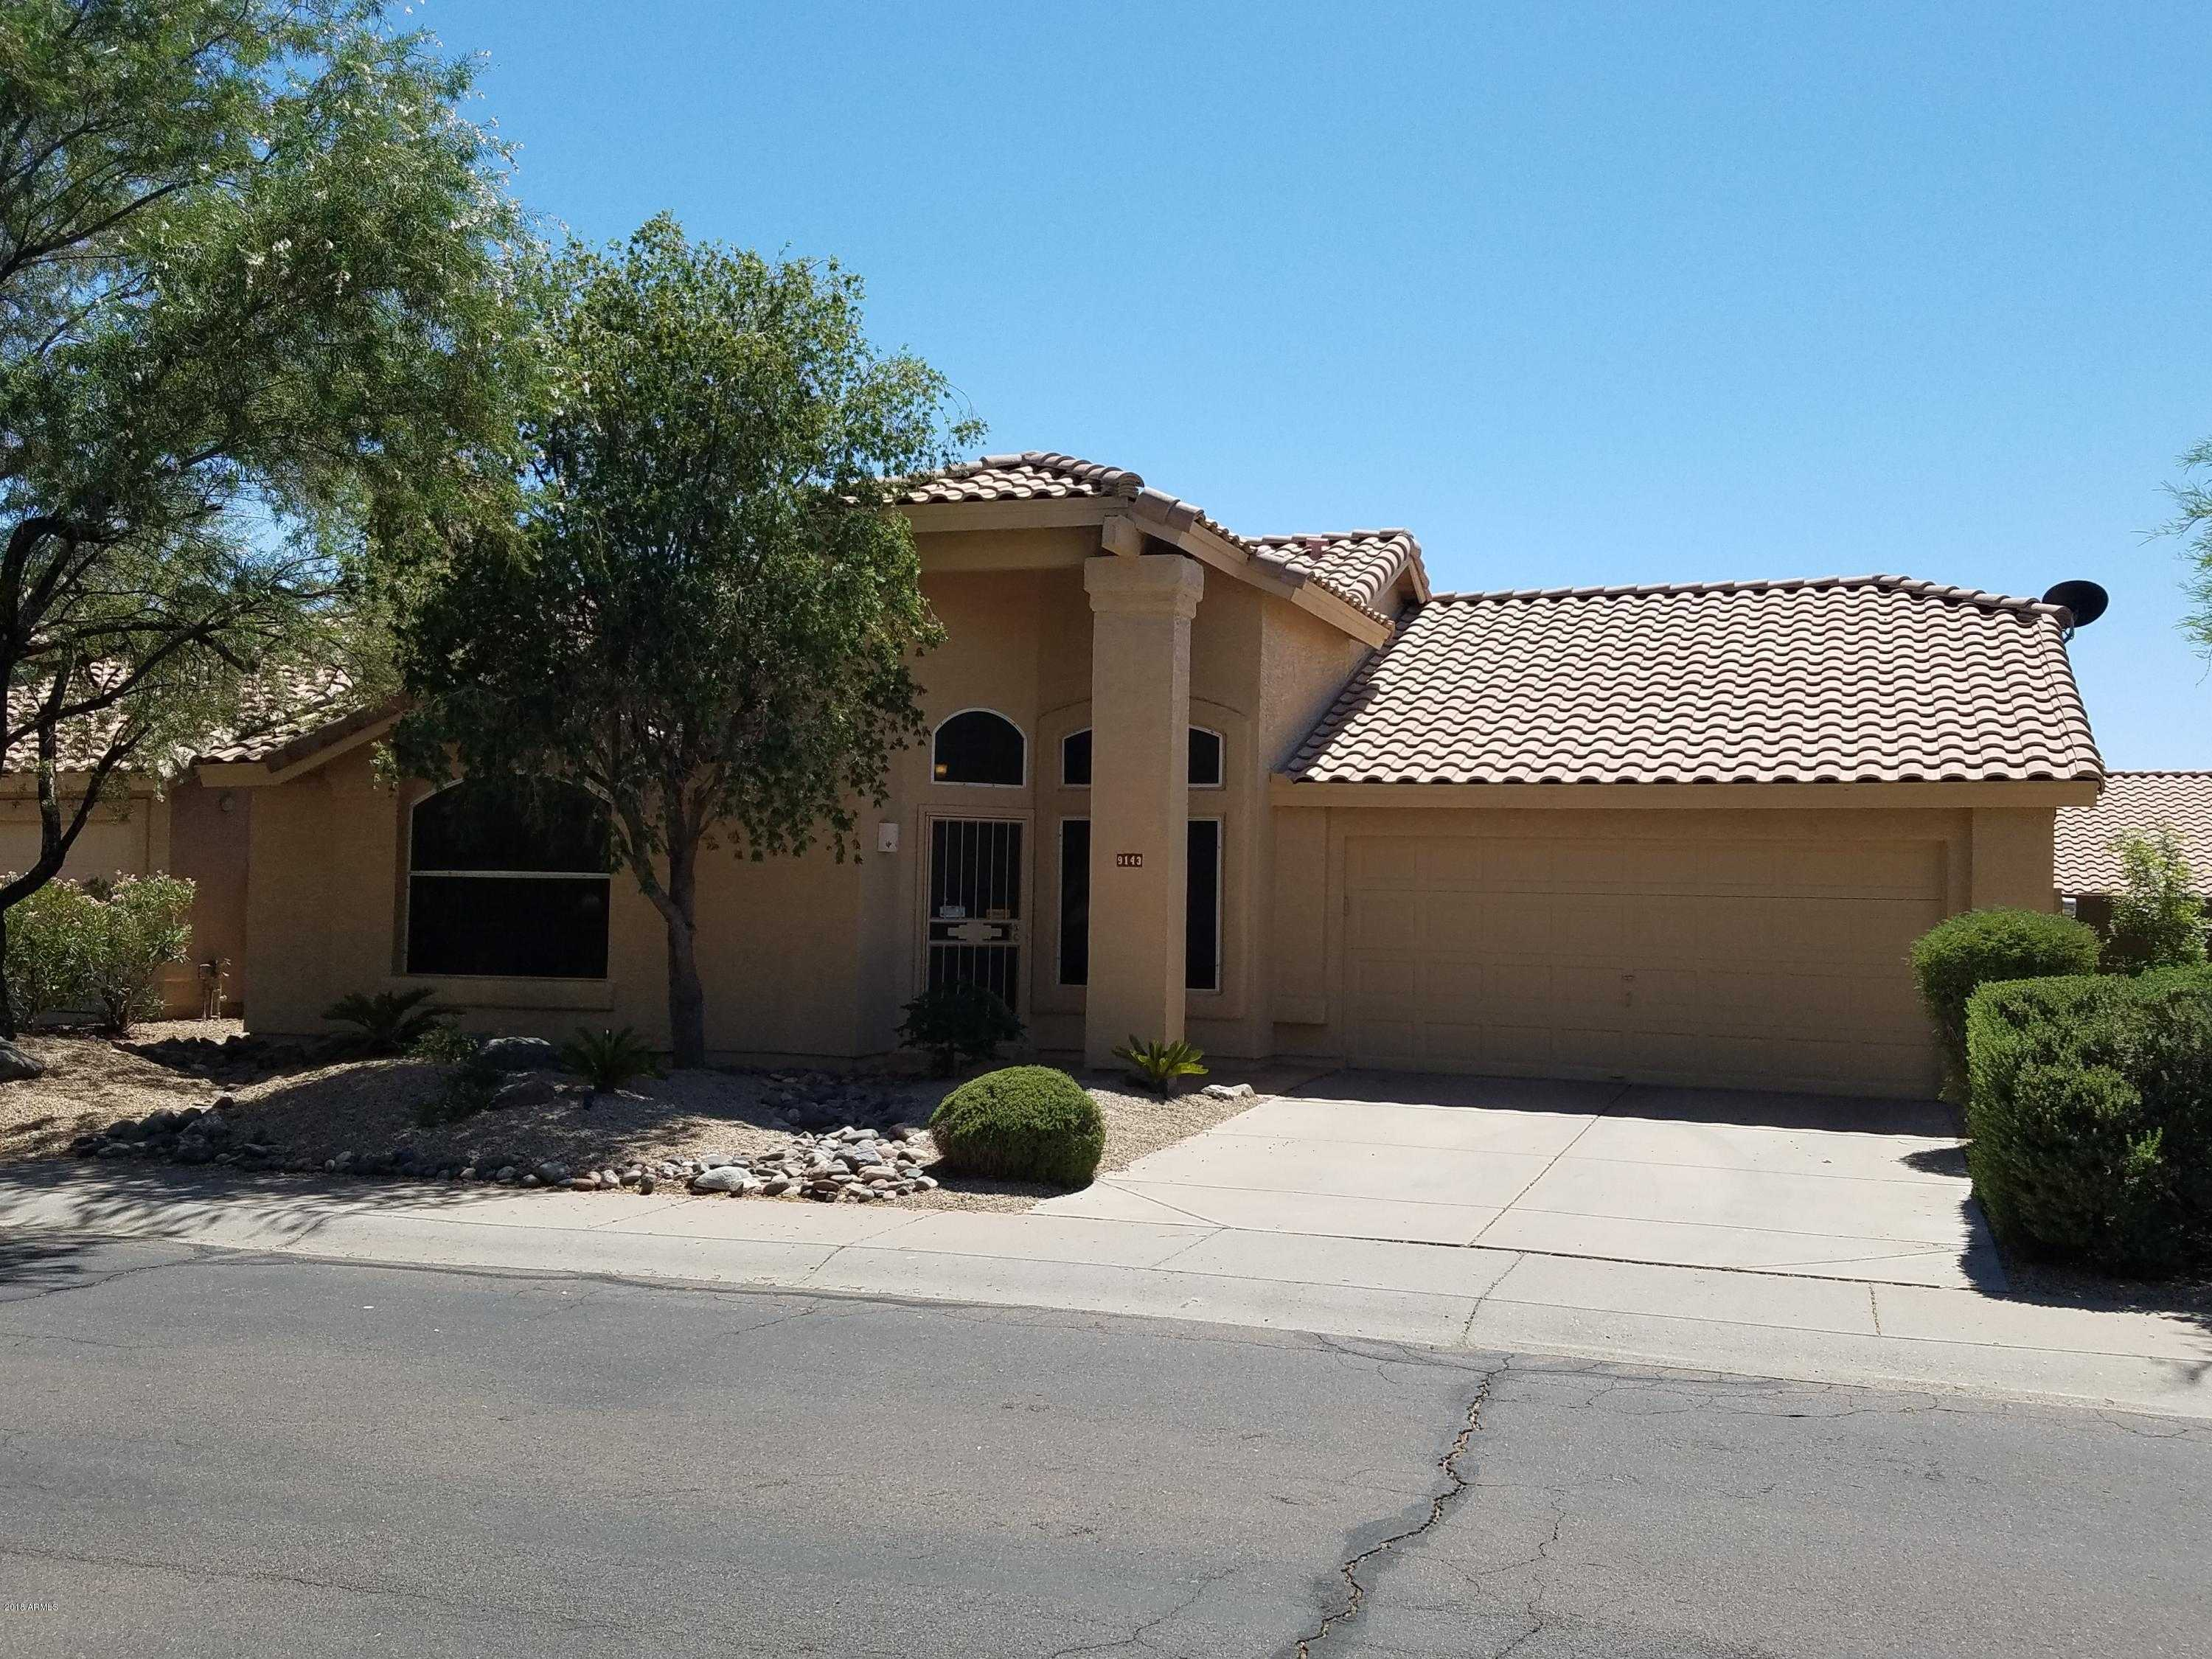 $374,900 - 2Br/2Ba - Home for Sale in Cliffs At Ironwood Village Unit 2 59-156 A-h, Scottsdale